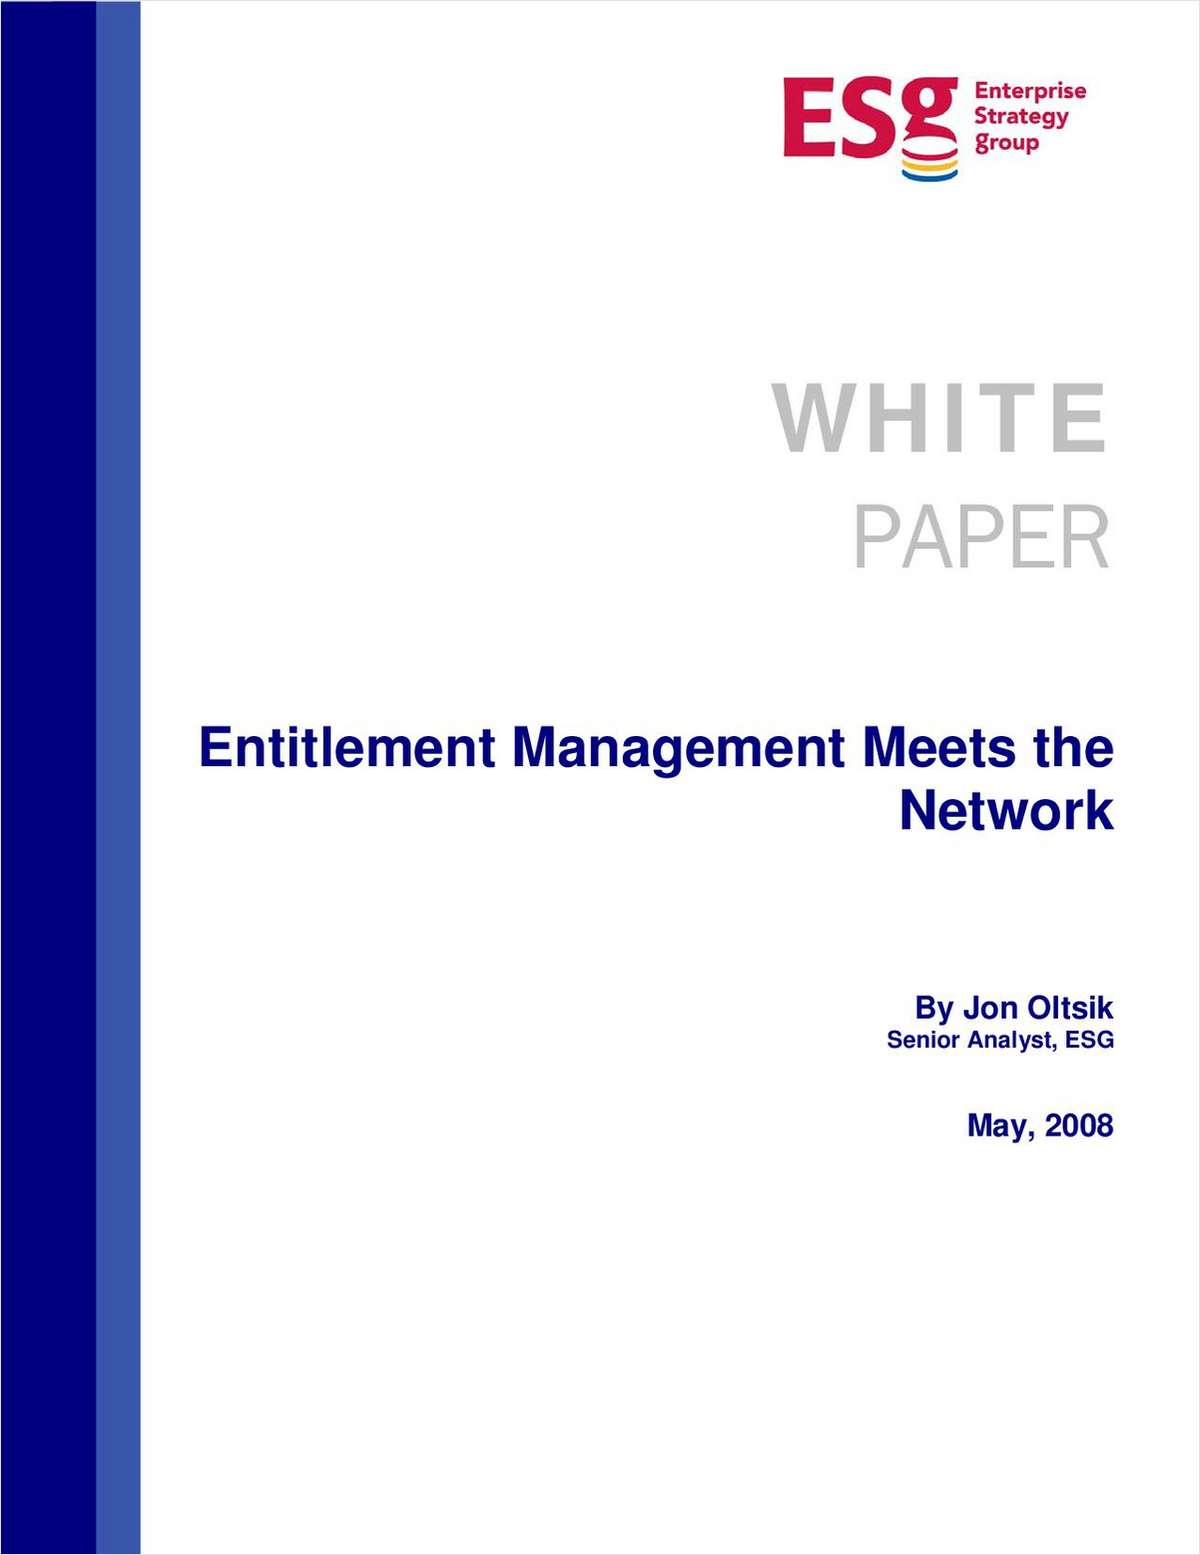 Entitlement Management Meets the Network